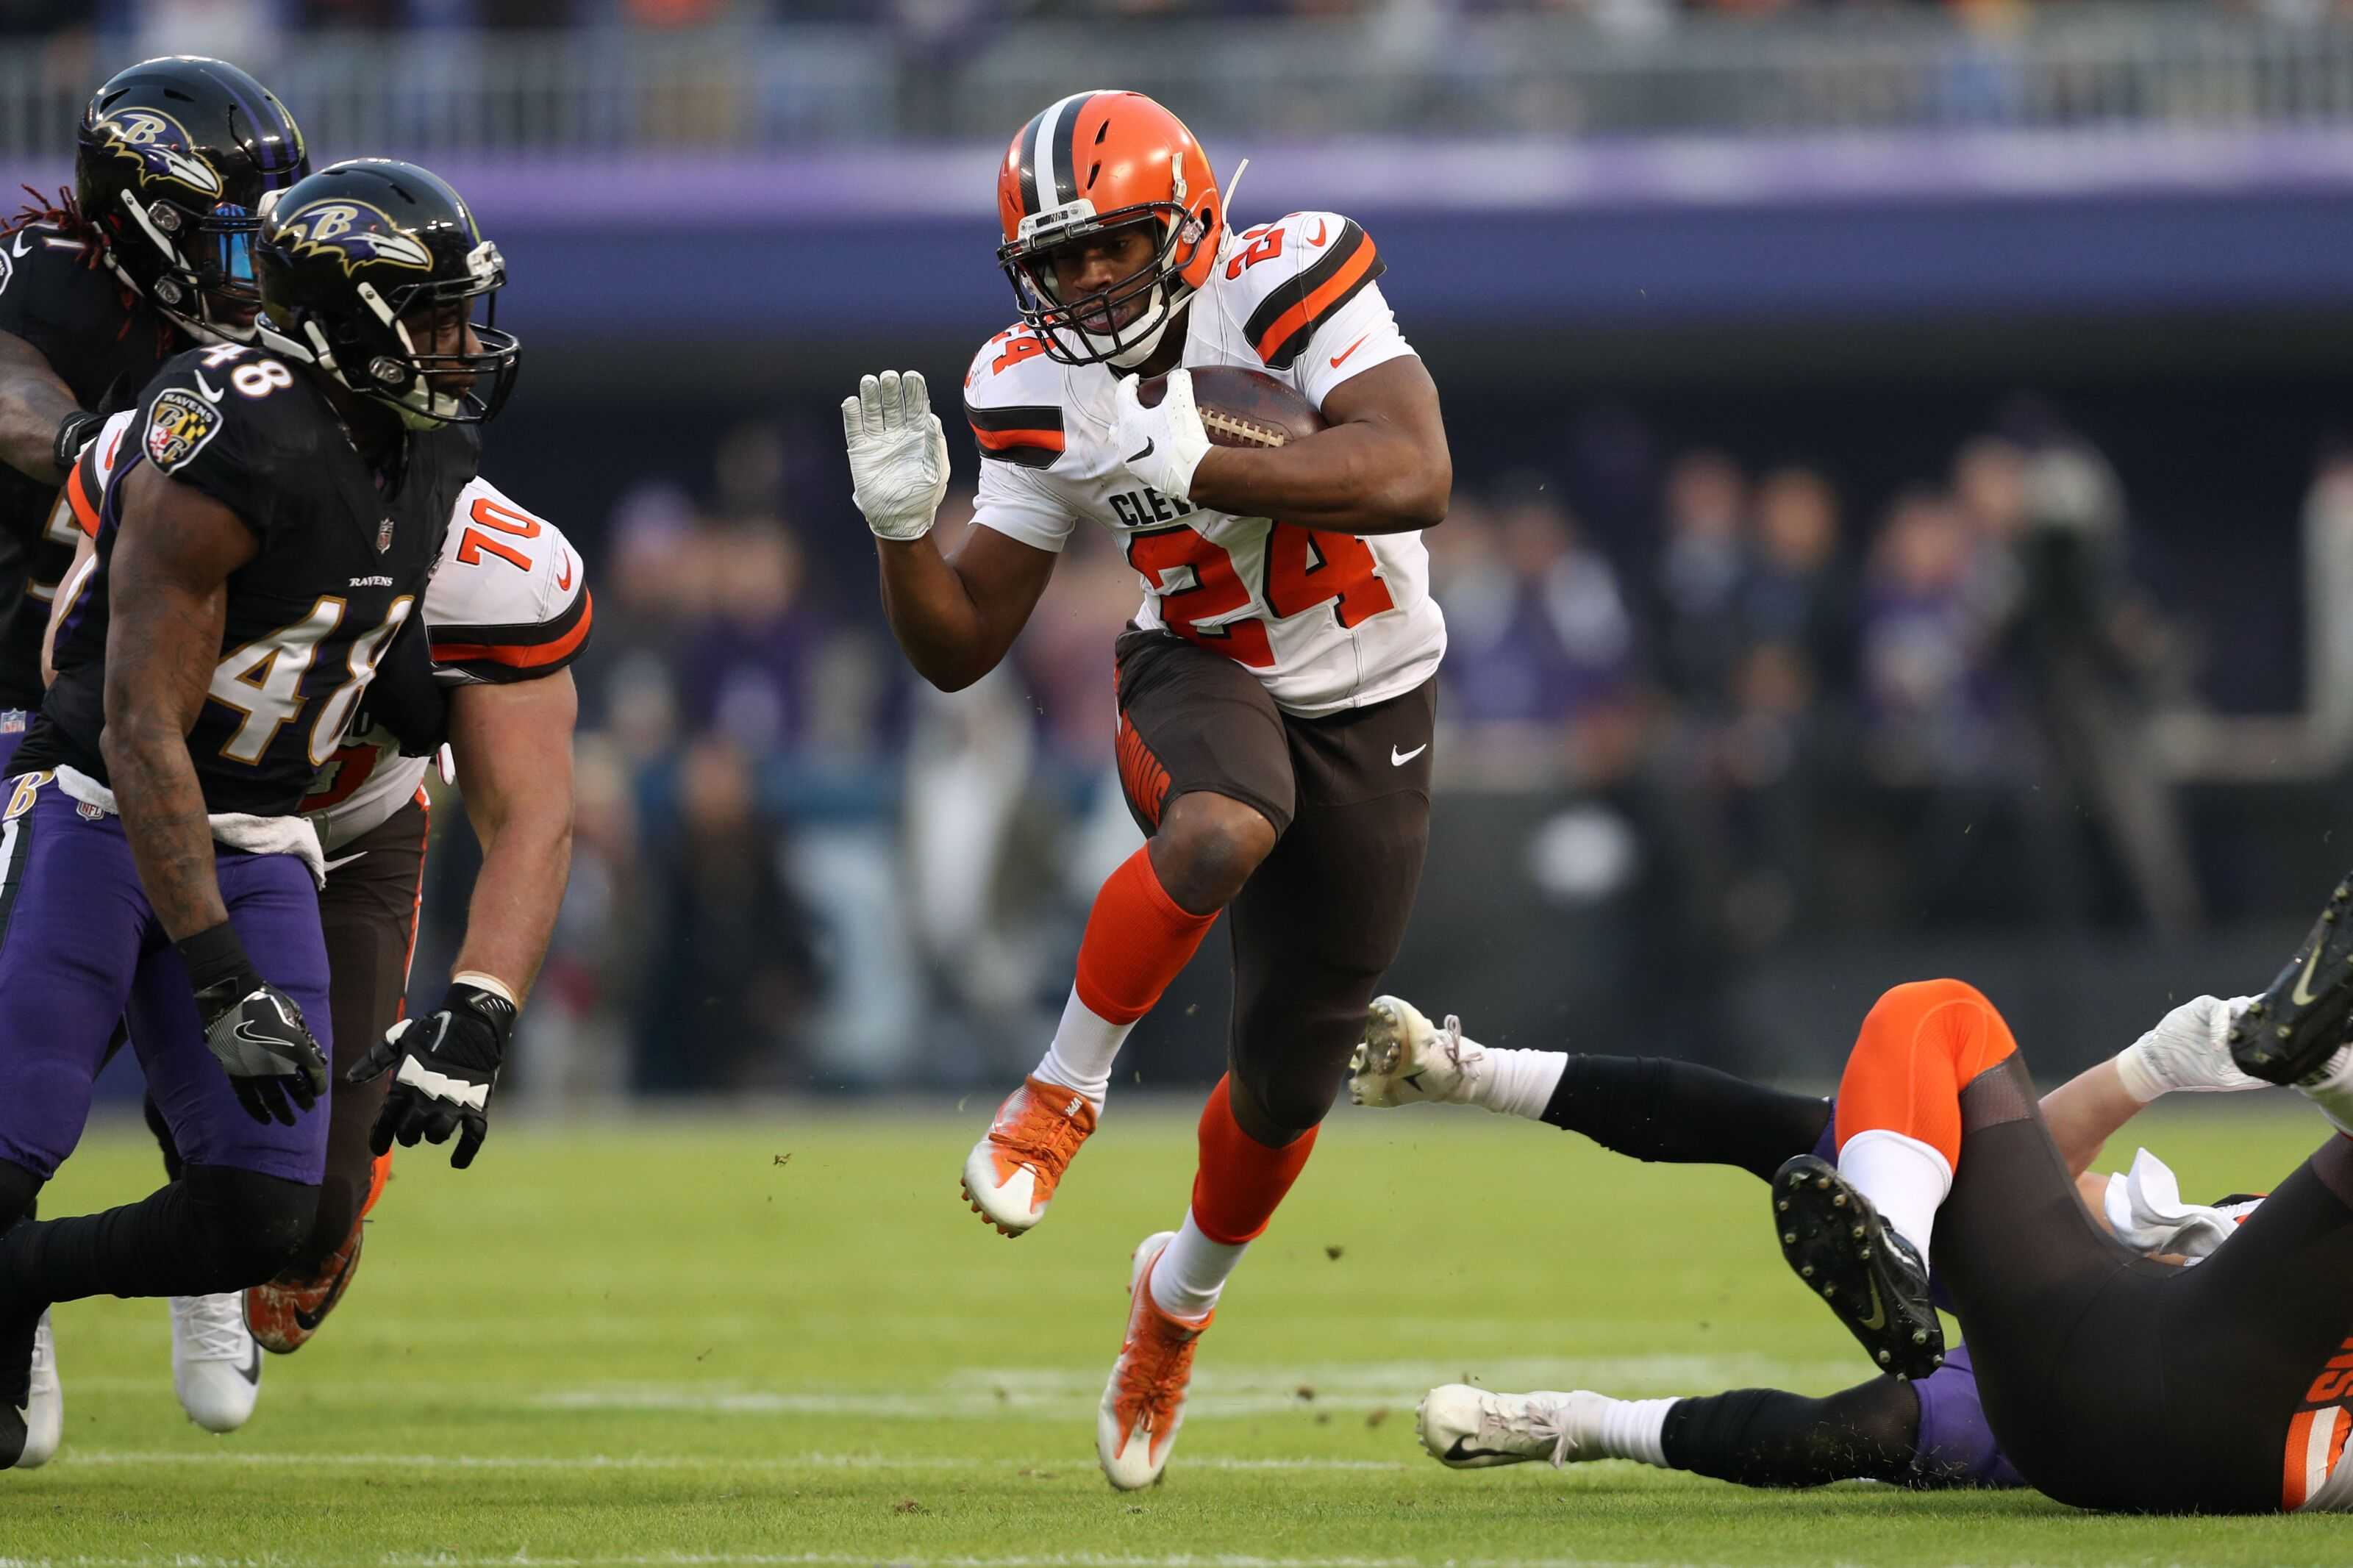 Cleveland Browns playoff bound in 2019 says Nick Chubb